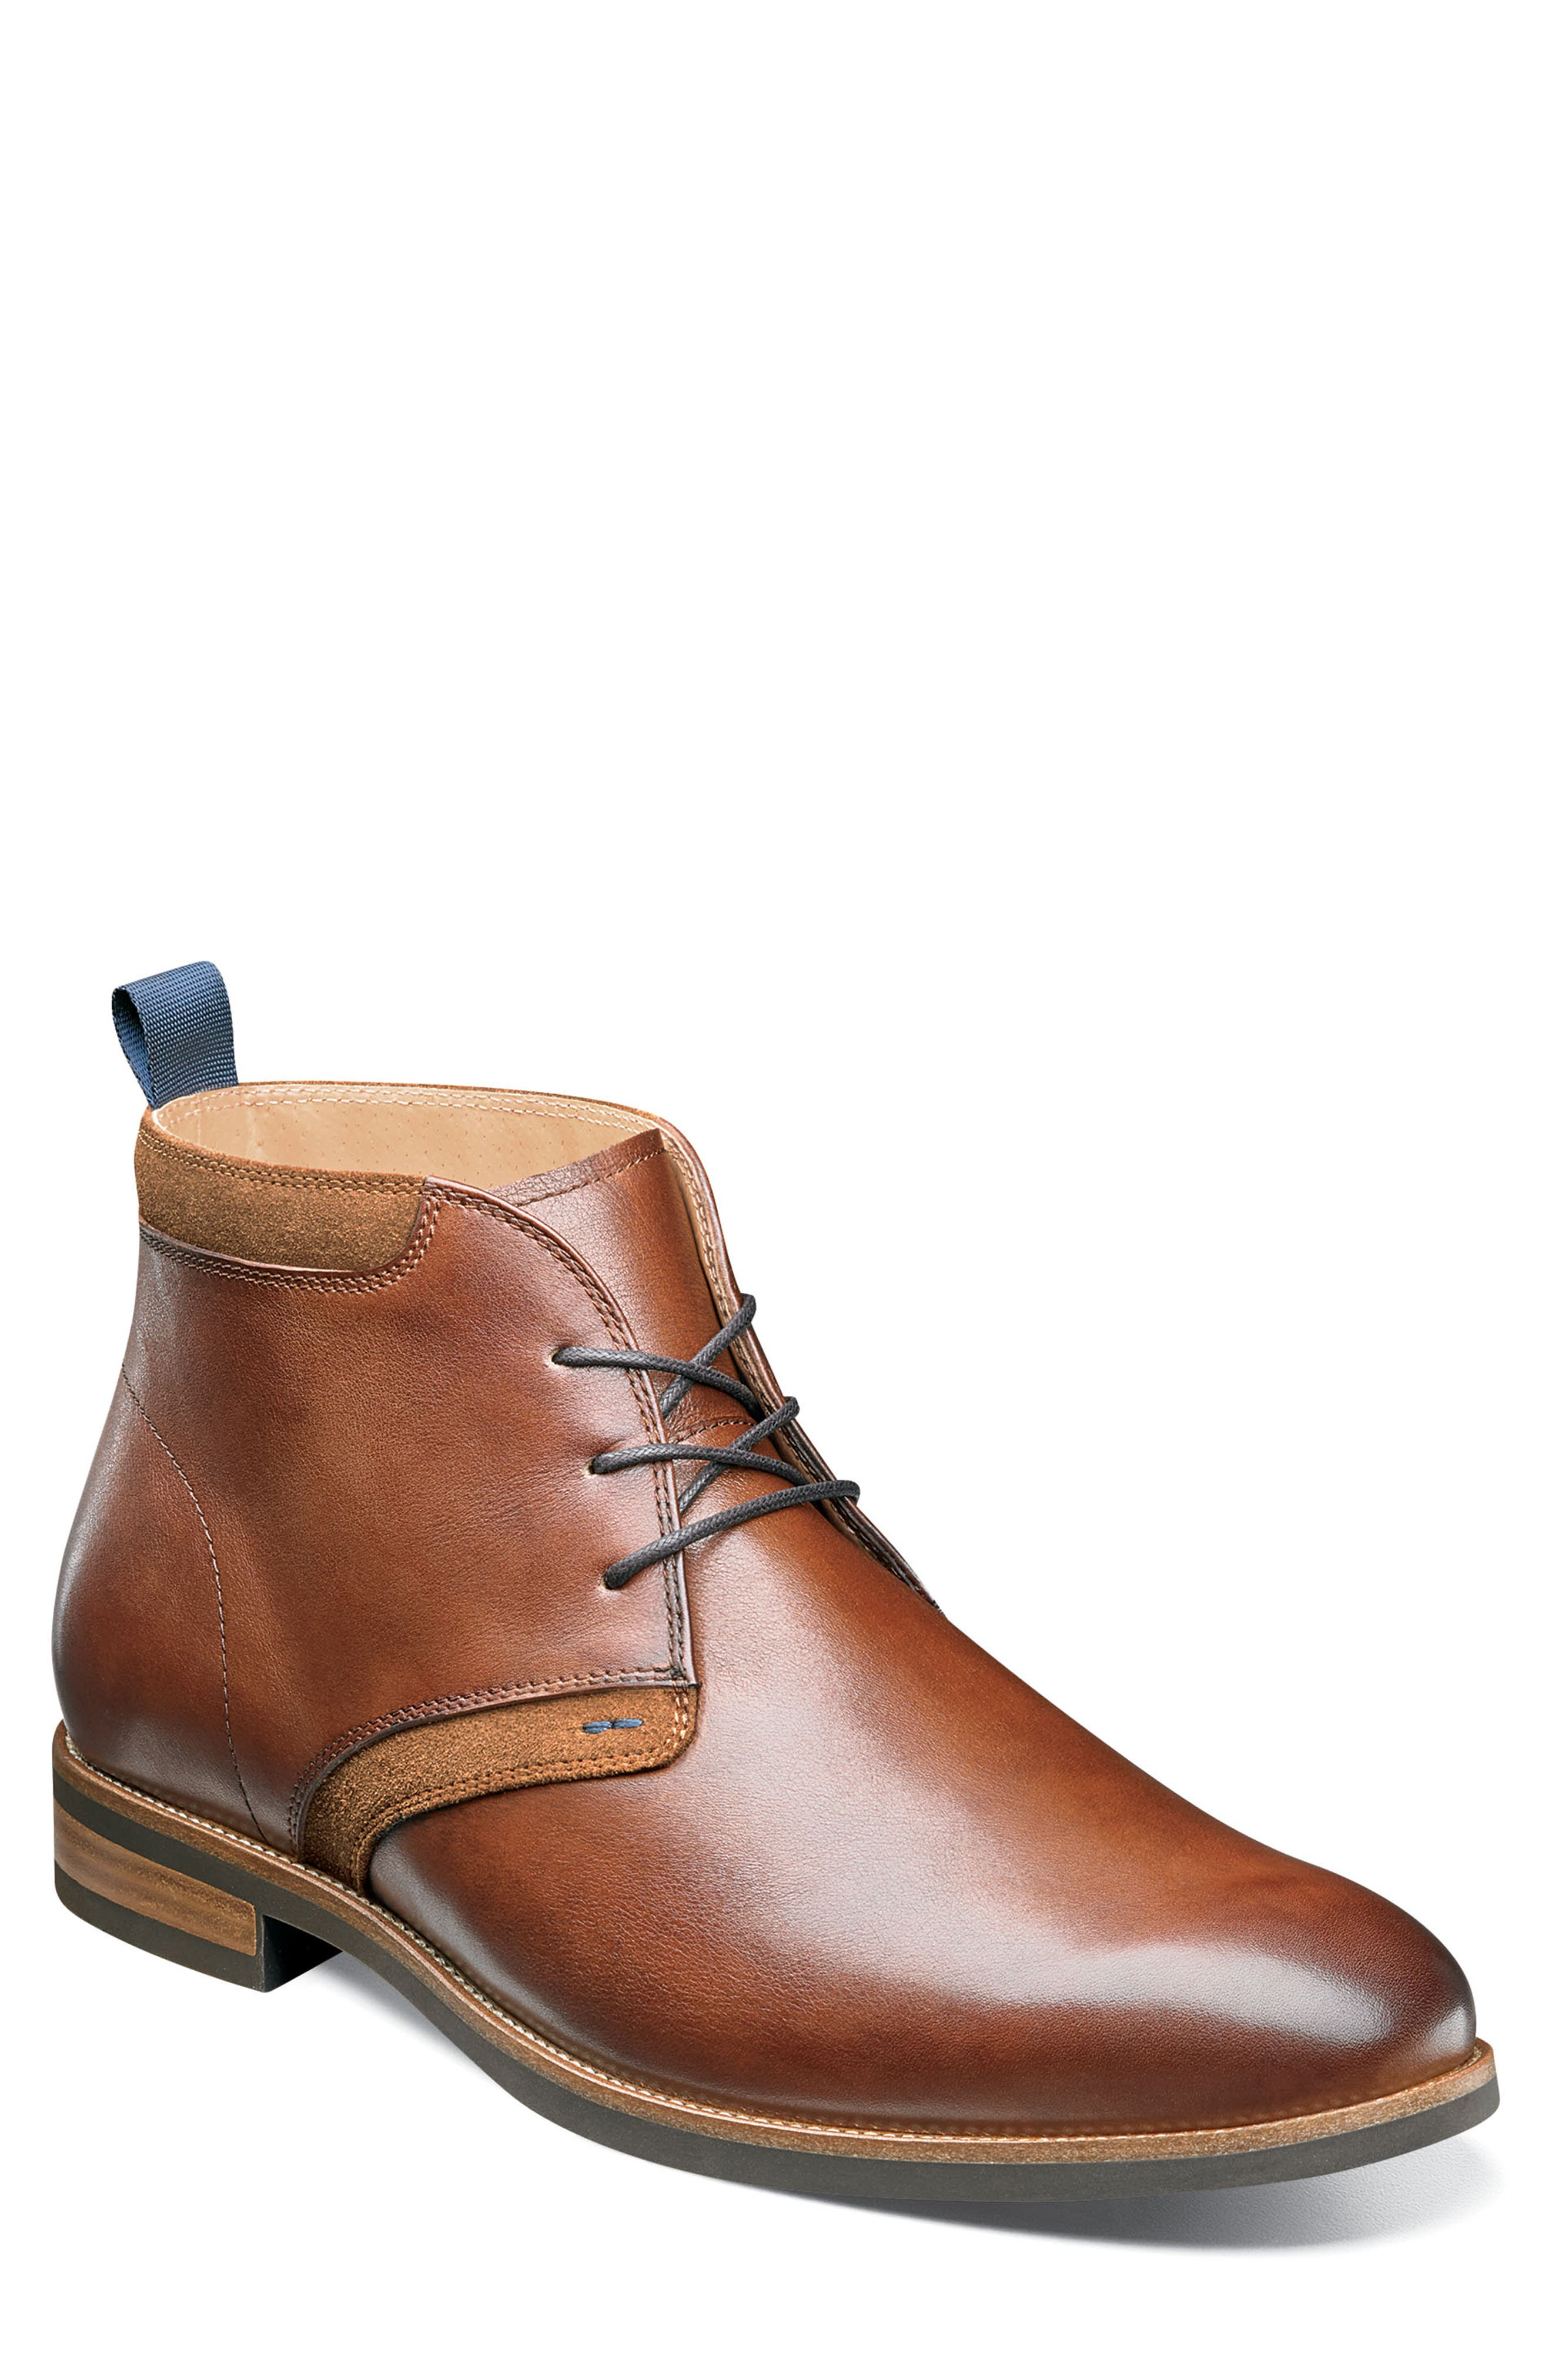 Uptown Chukka Boot,                         Main,                         color, COGNAC LEATHER